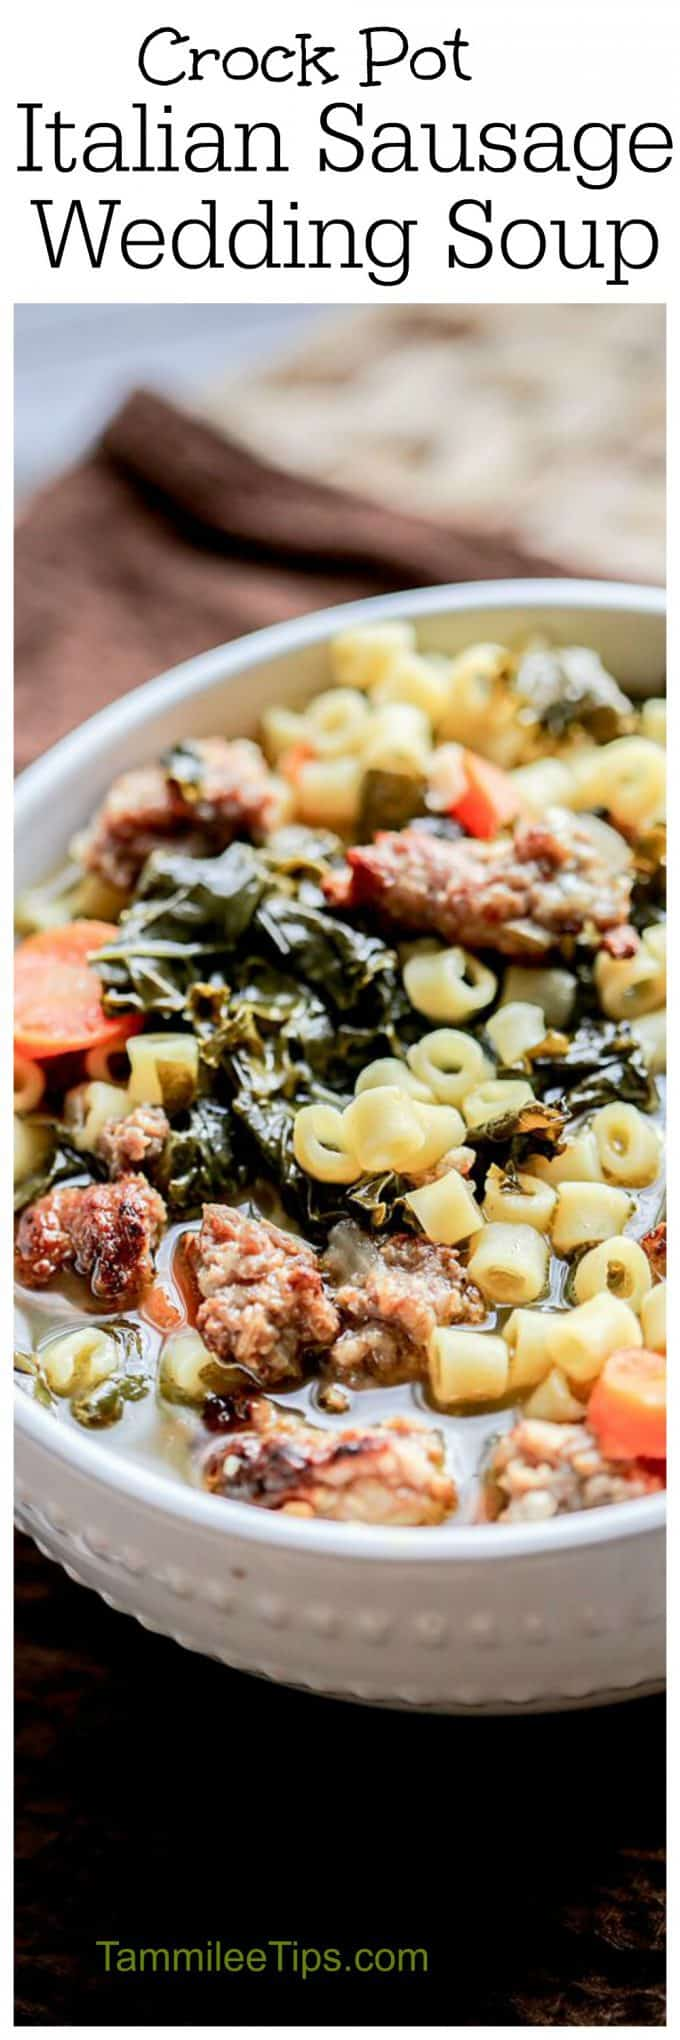 Easy slow cooker crock pot Italian Sausage Wedding Soup recipe that is the perfect comfort food for a winter night. Perfect for families dinners!